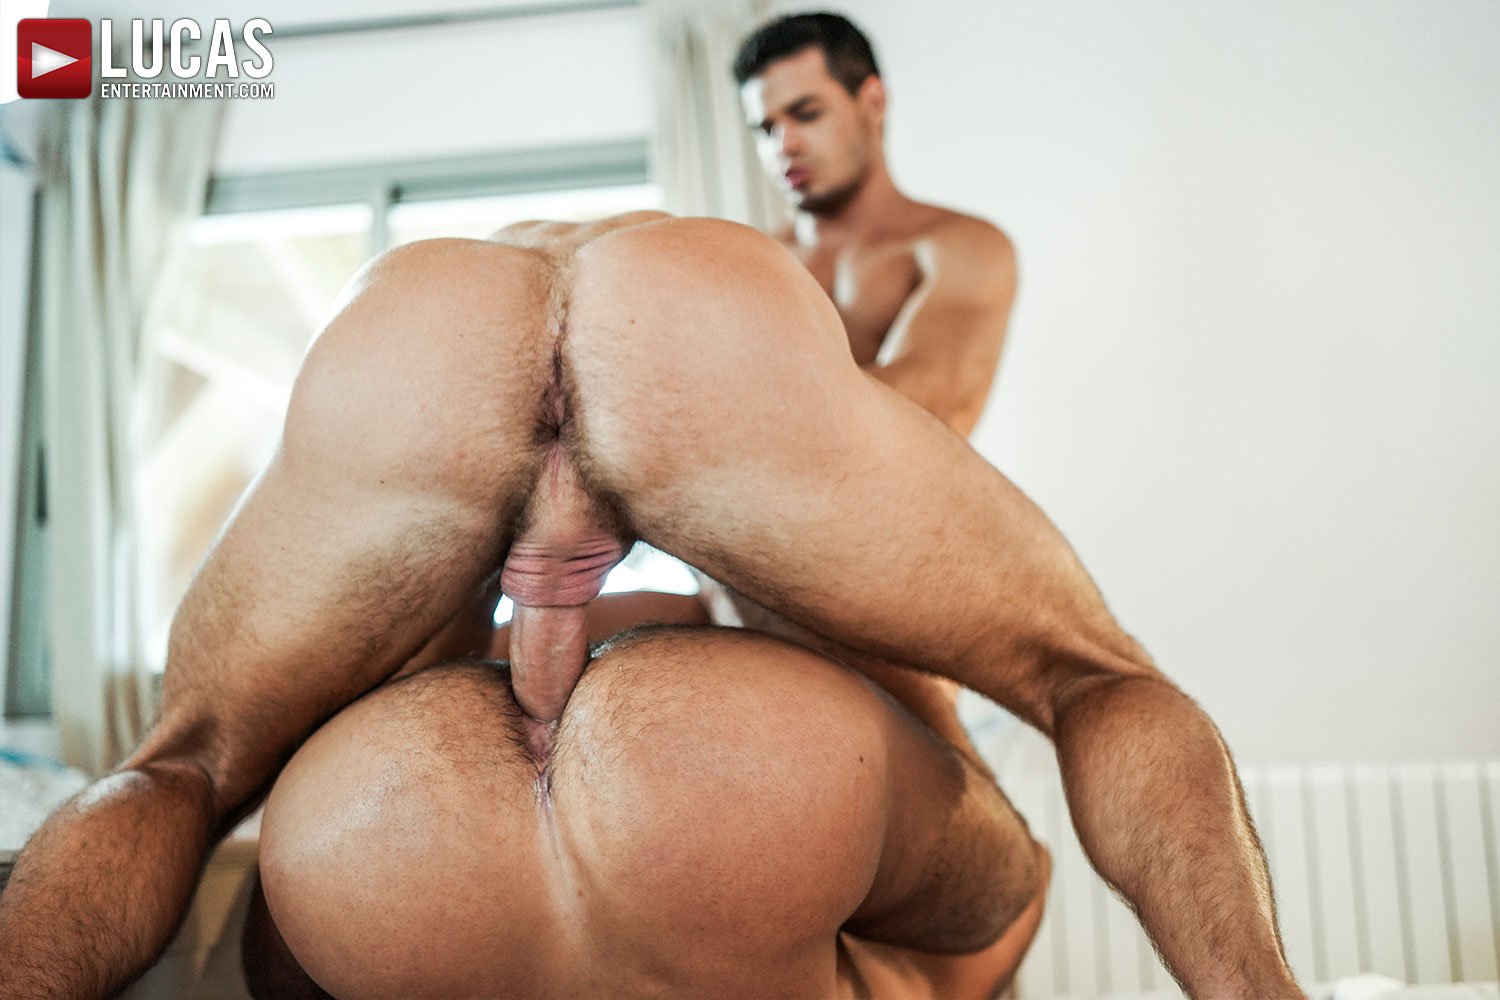 fotos follando porno gay gratis